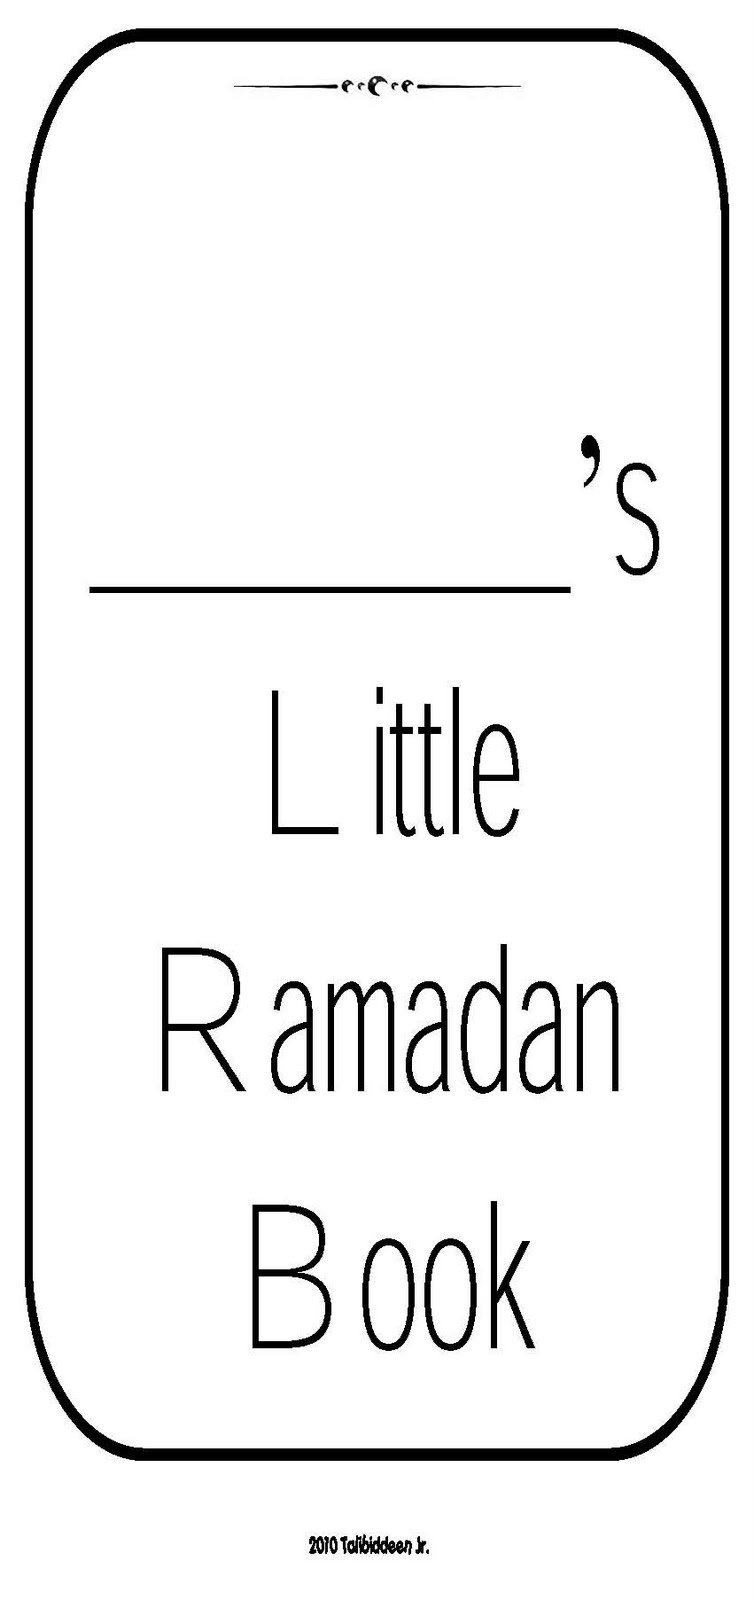 Coloring pages ramadan - If You Are Looking A Simple And Beautiful Way To Narrate To Your Kids About Ramadan Talibiddeen Jr Companion Blog Has Got This Wonderful Coloring Book As